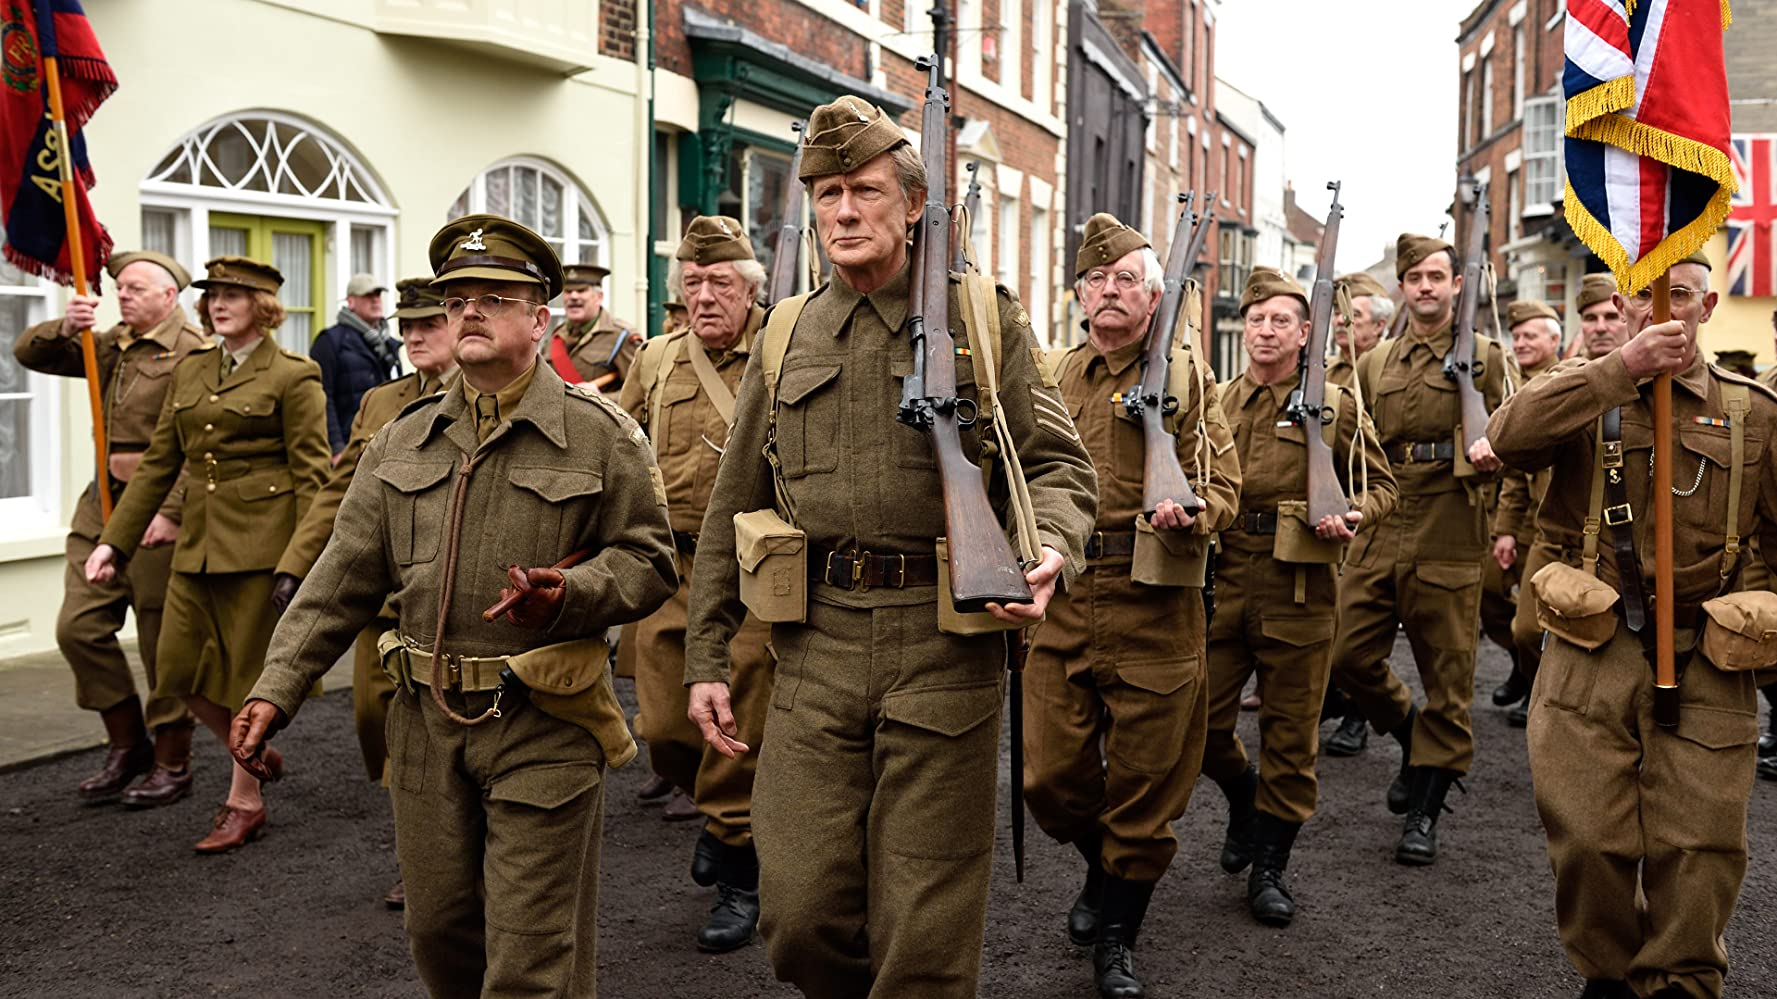 Michael Gambon, Tom Courtenay, Toby Jones, Sarah Lancashire, Felicity Montagu, Bill Nighy, Bill Paterson, Daniel Mays, Philip Gascoyne, Harry Knight, and Chris Dale in Dad's Army (2016)